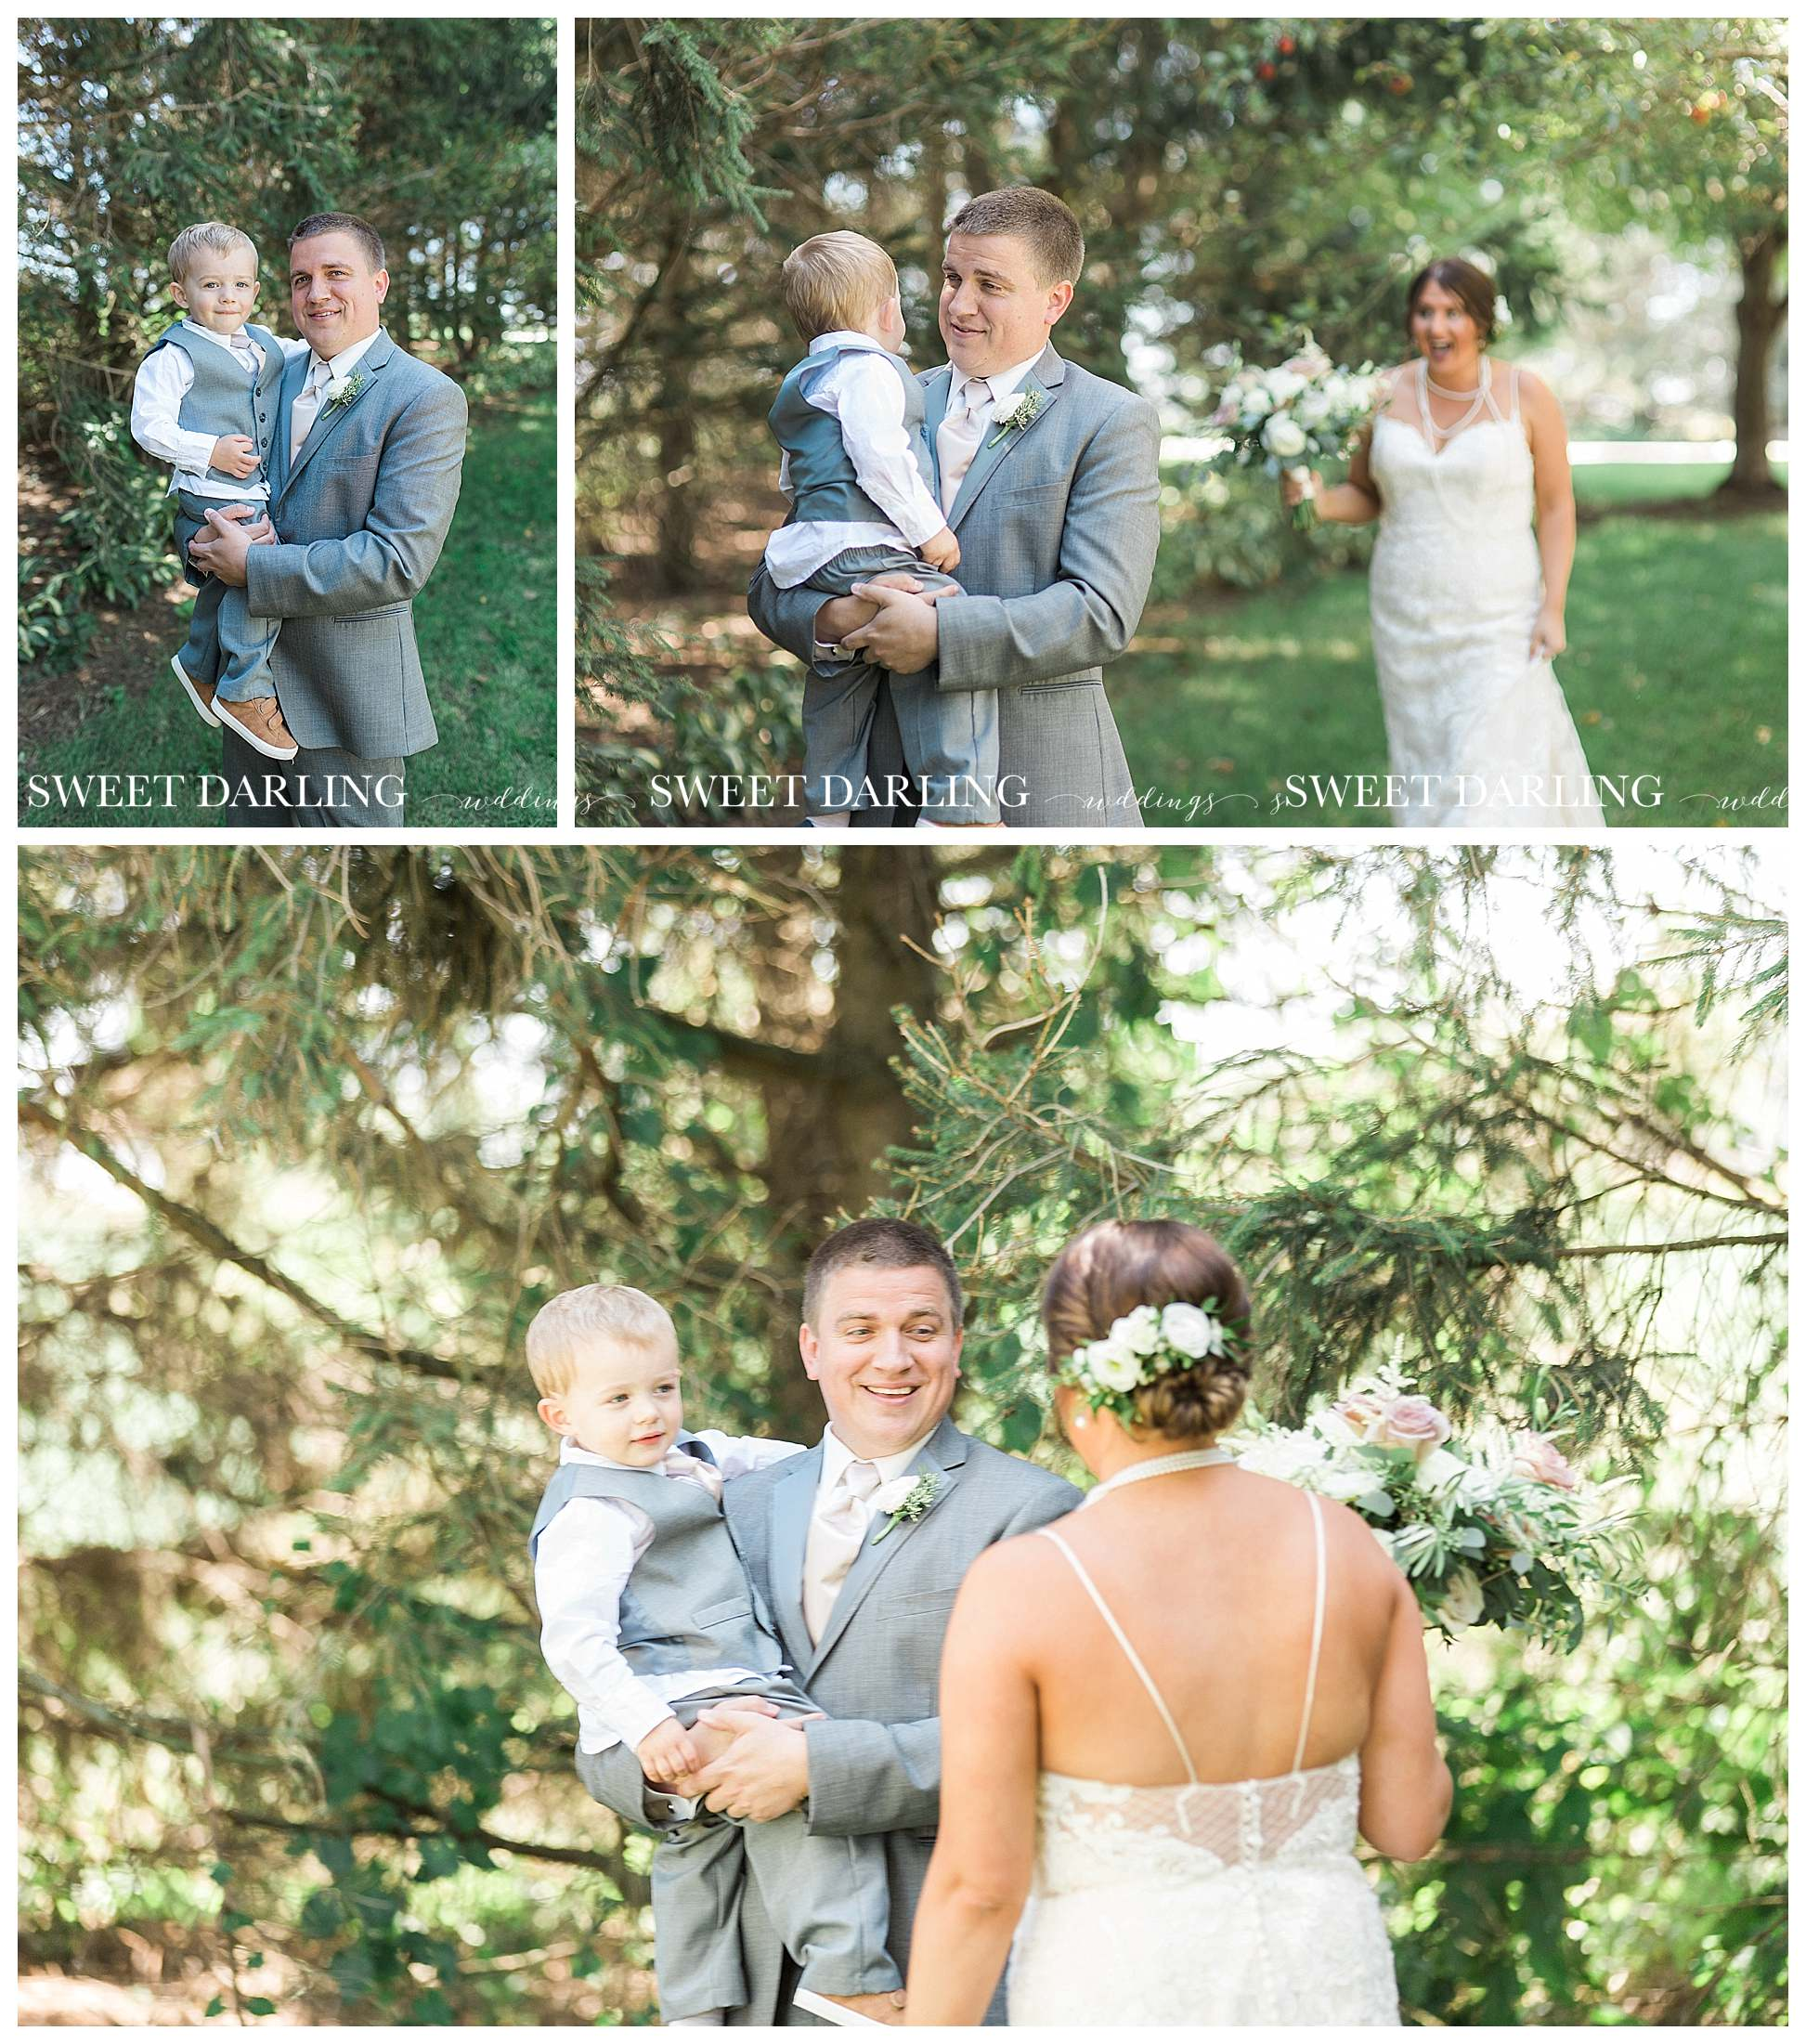 First look at wedding with groom and son